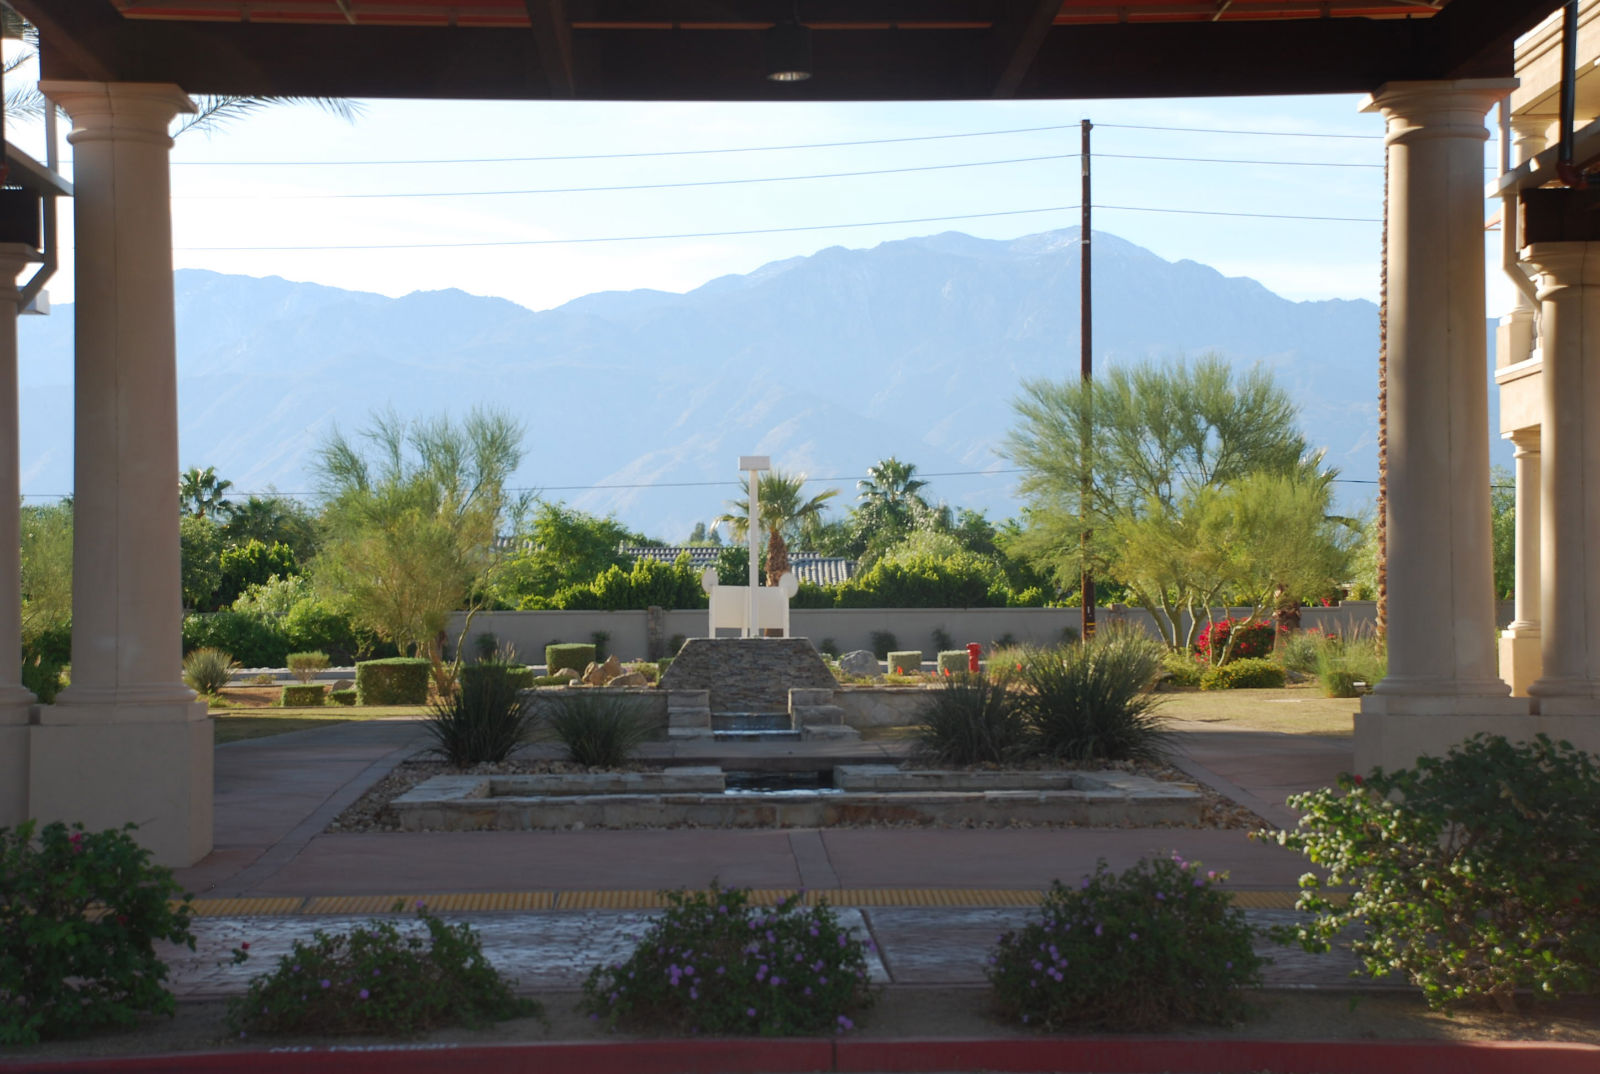 Porte-cochere for disabled patients, behind the majestic Rancho Mirage mountain range.